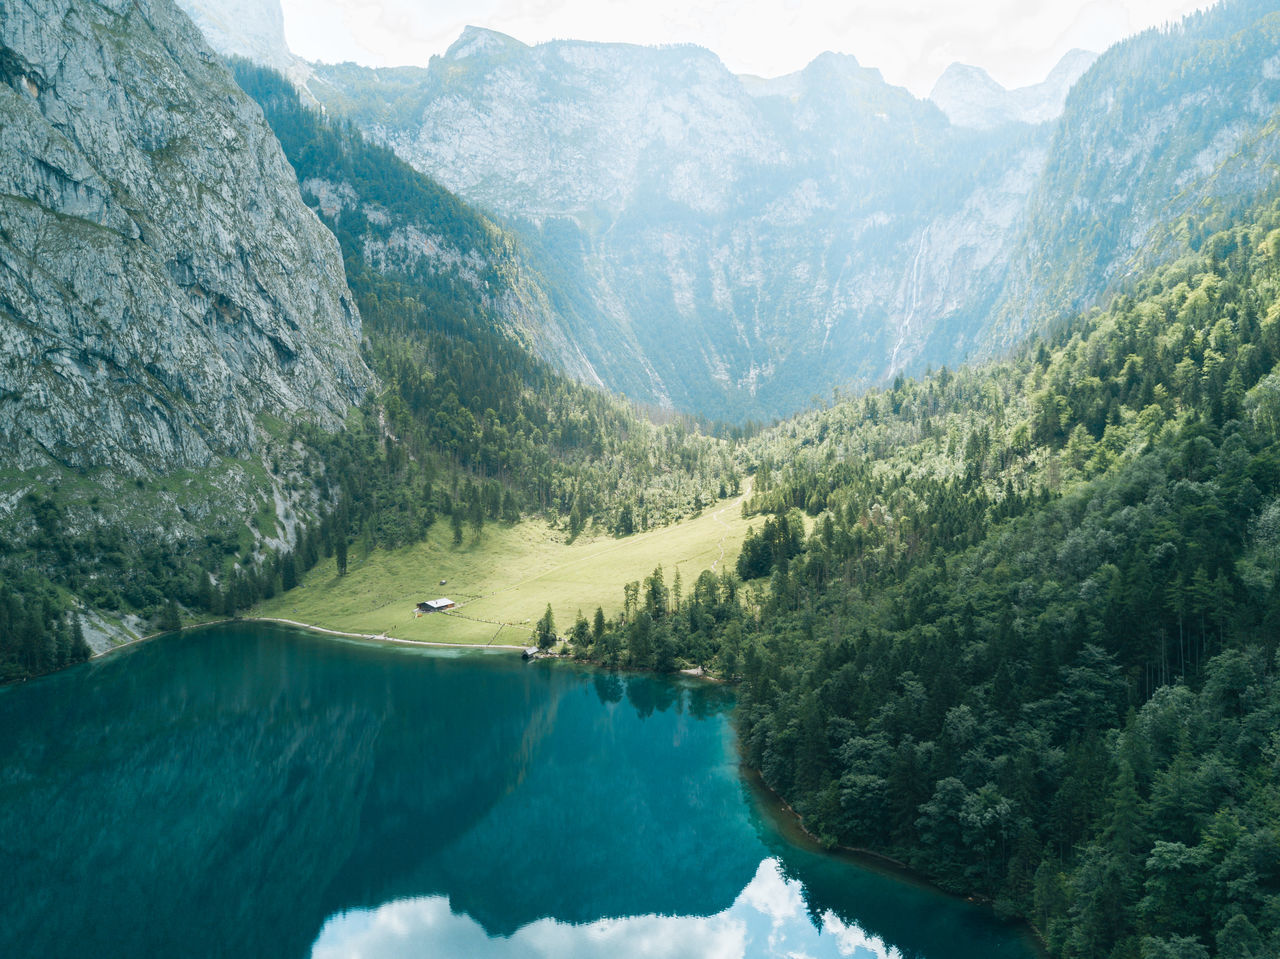 Aerial image of a mountain lake with reflection. Beauty In Nature Day Landscape Mountain Mountain Range Nature No People Outdoors Scenics Sky Tranquil Scene Tranquility Tree Water EyeEm Selects